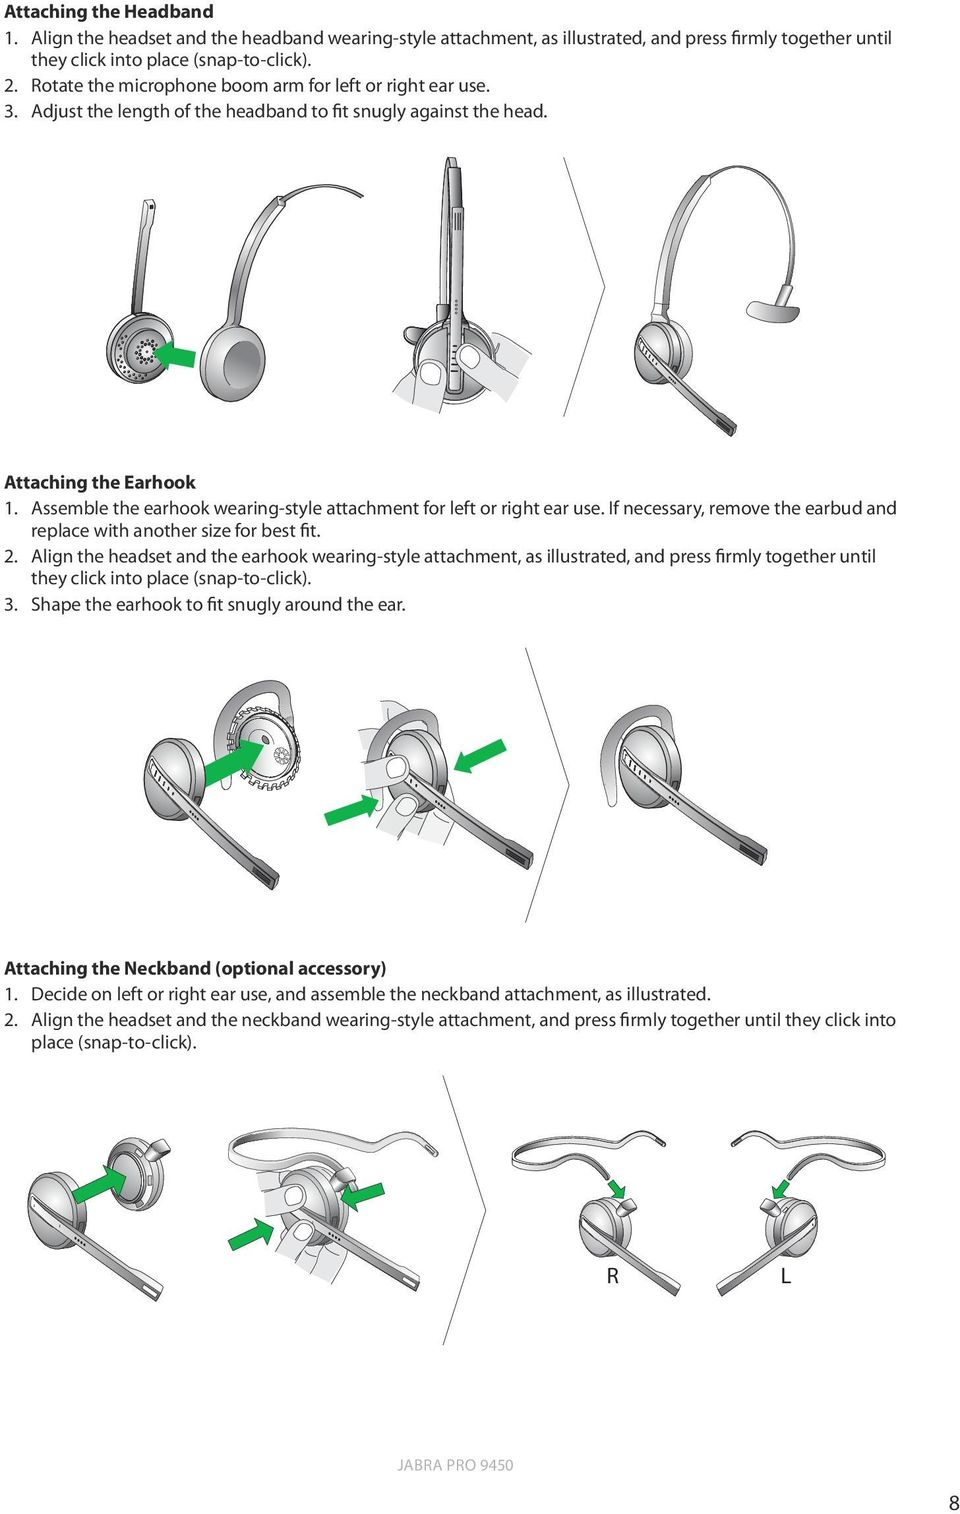 Assemble the earhook wearing-style attachment for left or right ear use. If necessary, remove the earbud and replace with another size for best fit. 2.